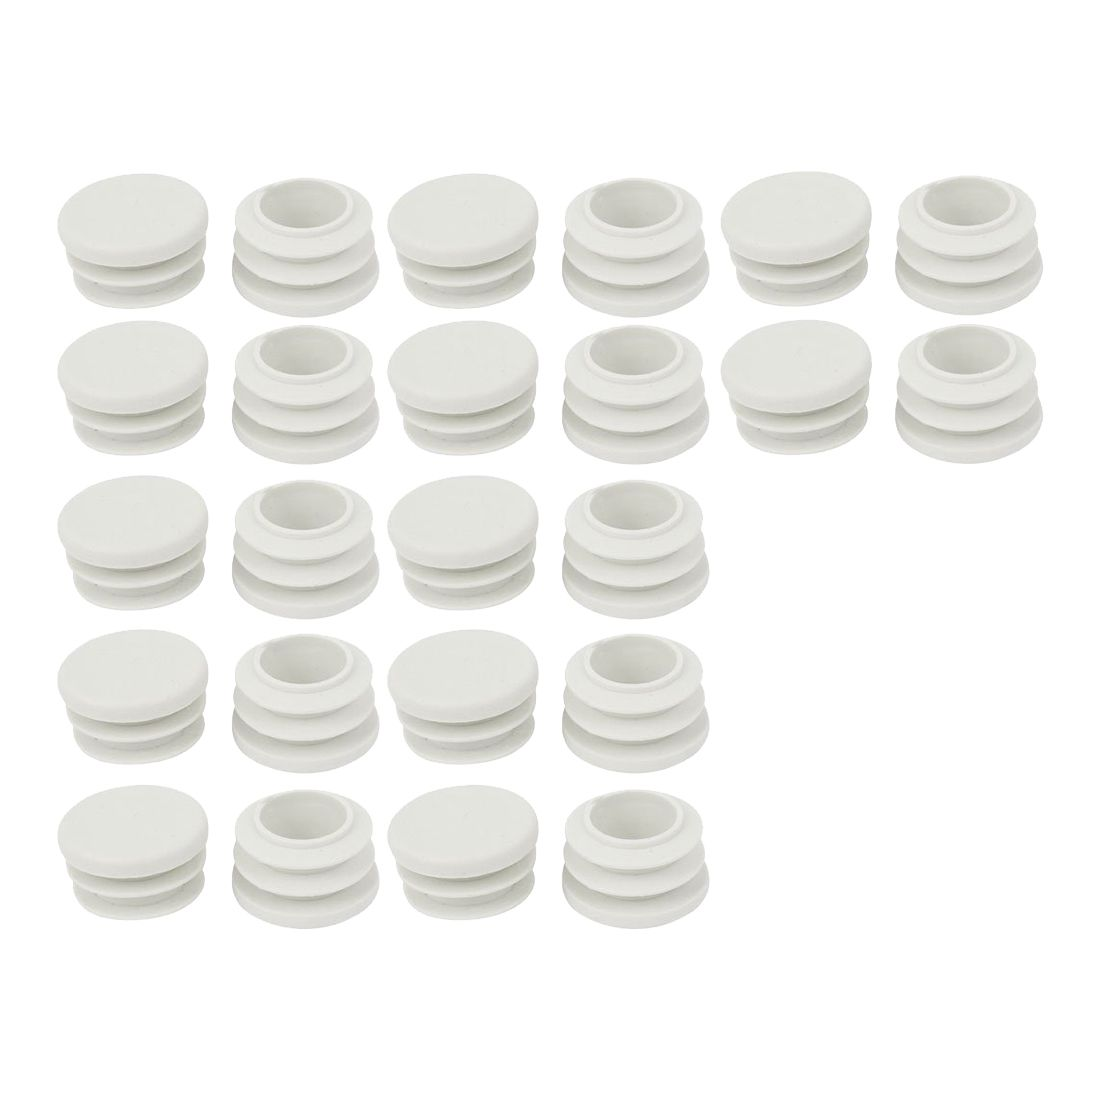 18mm Diameter Plastic White Plug Caps Inserts For Tubes Cap 24 Pieces